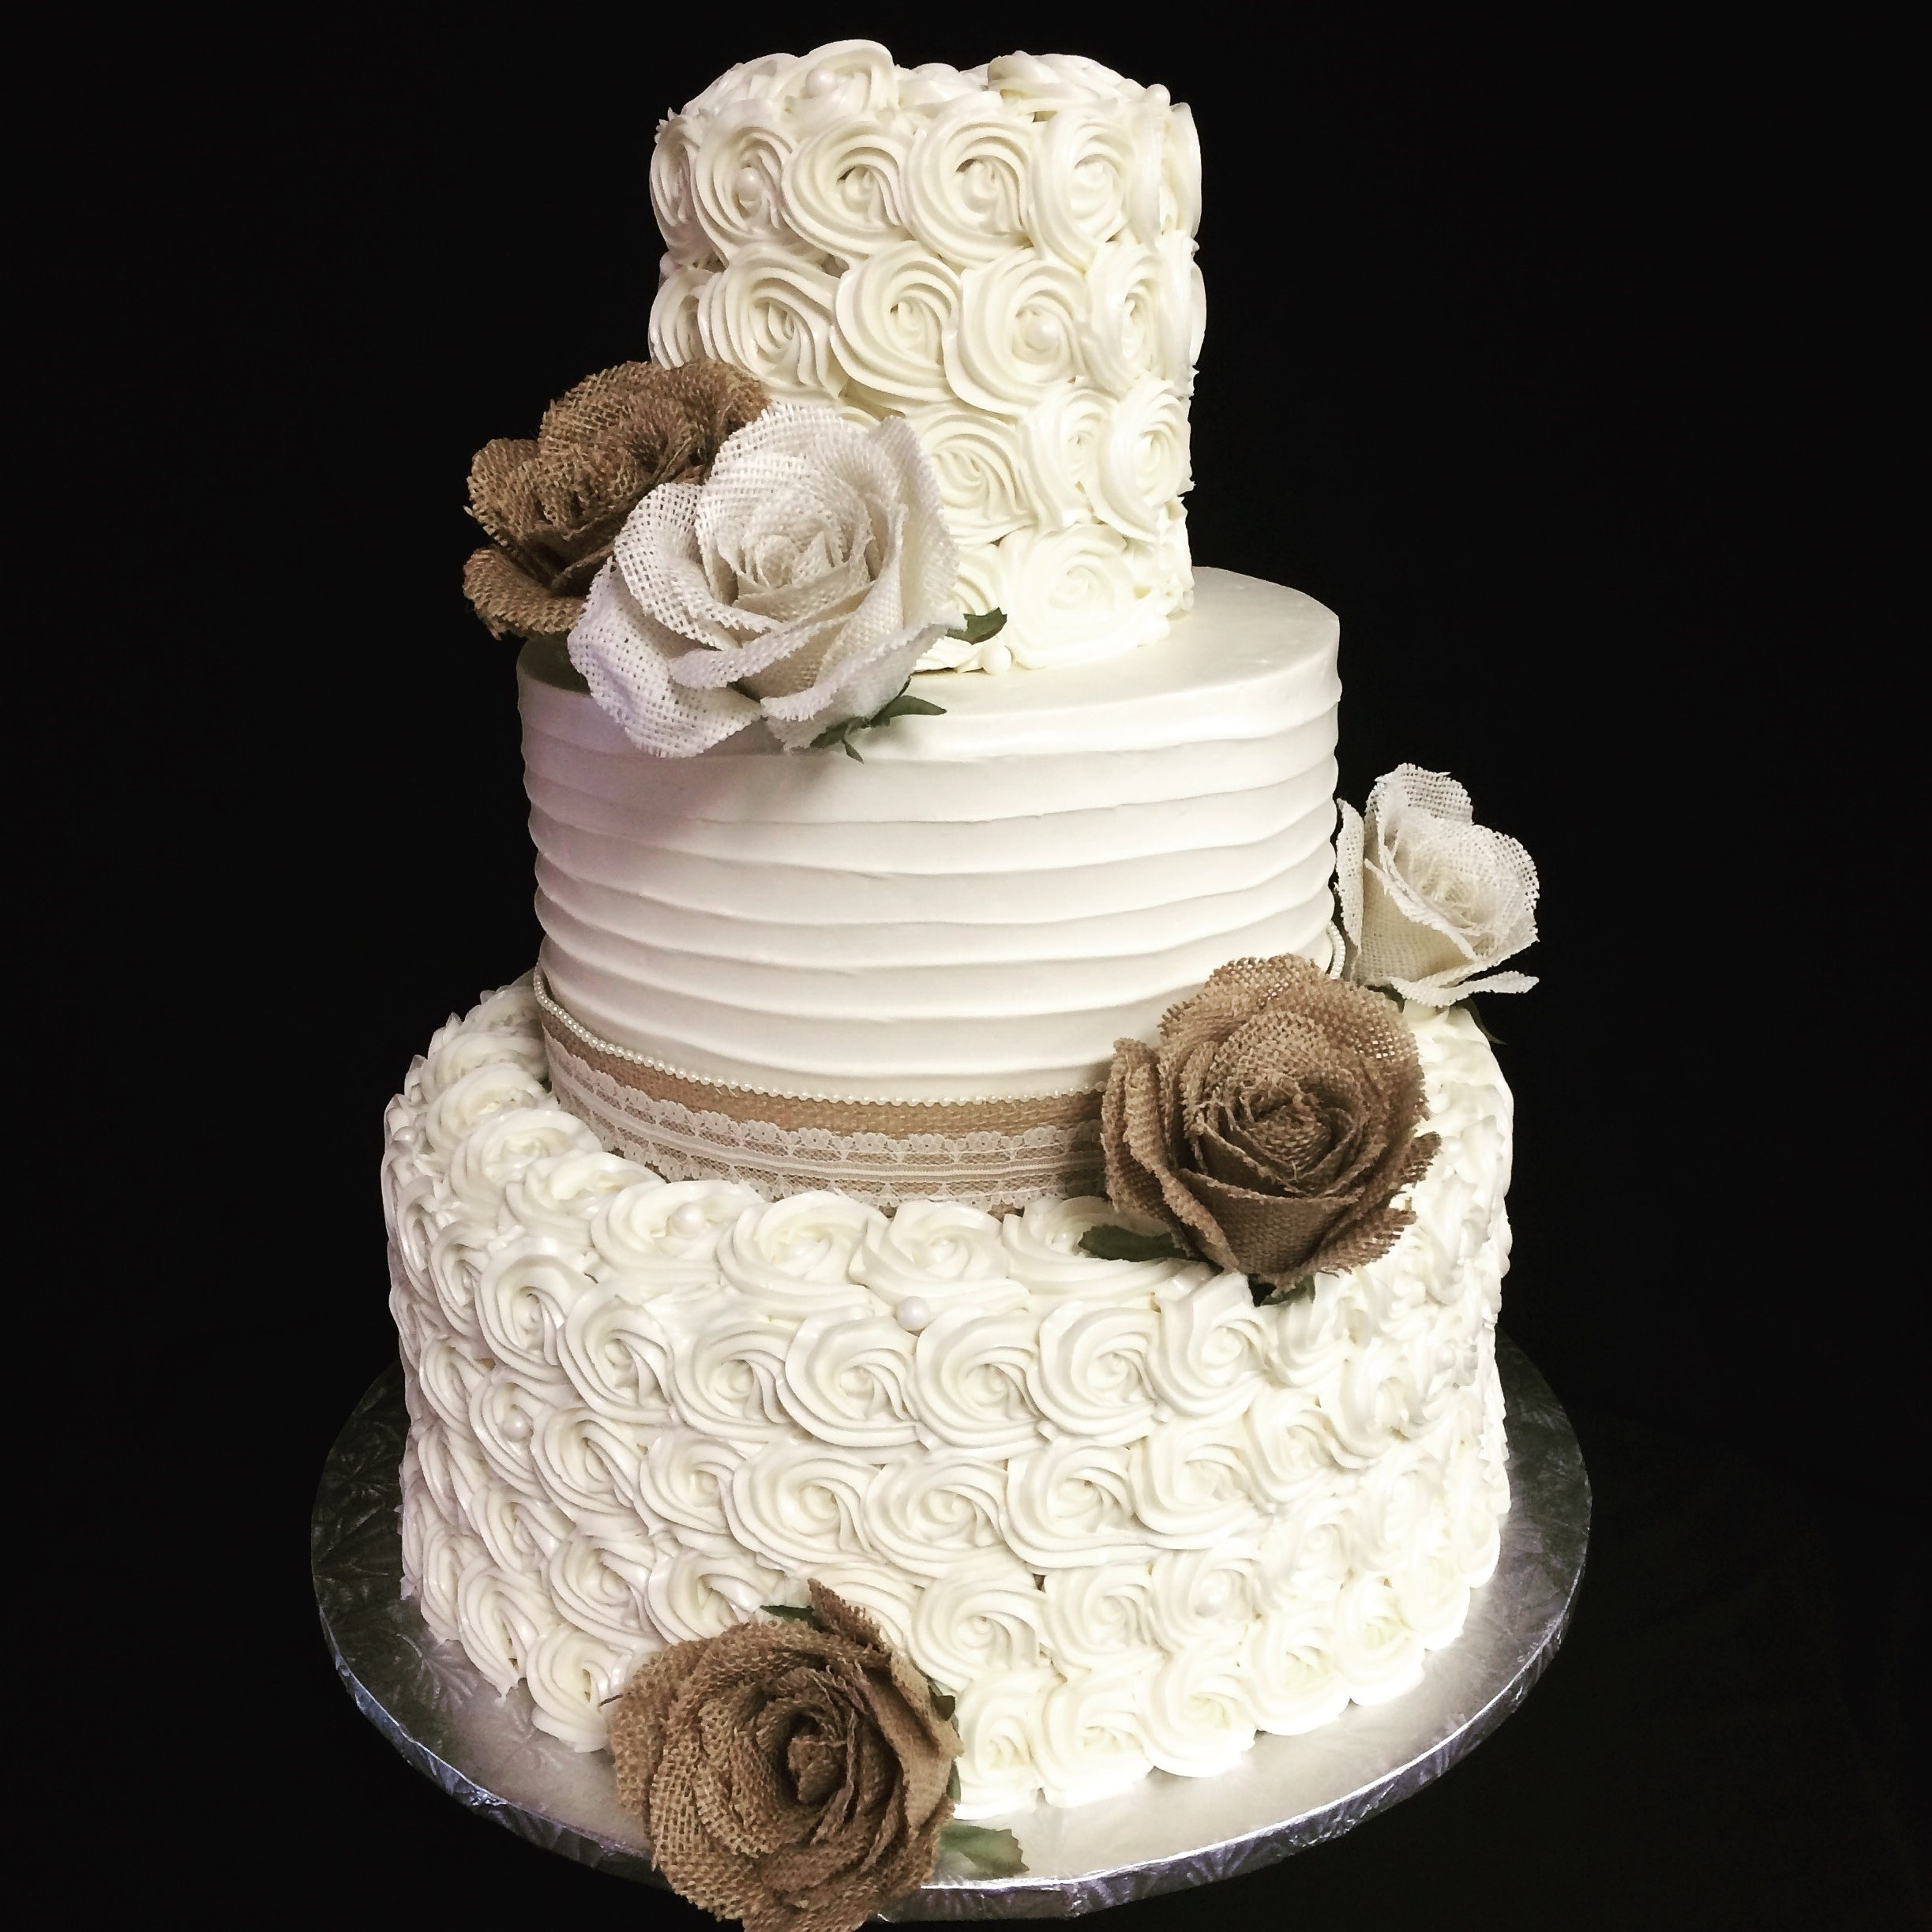 wedding cakes burlap (5)